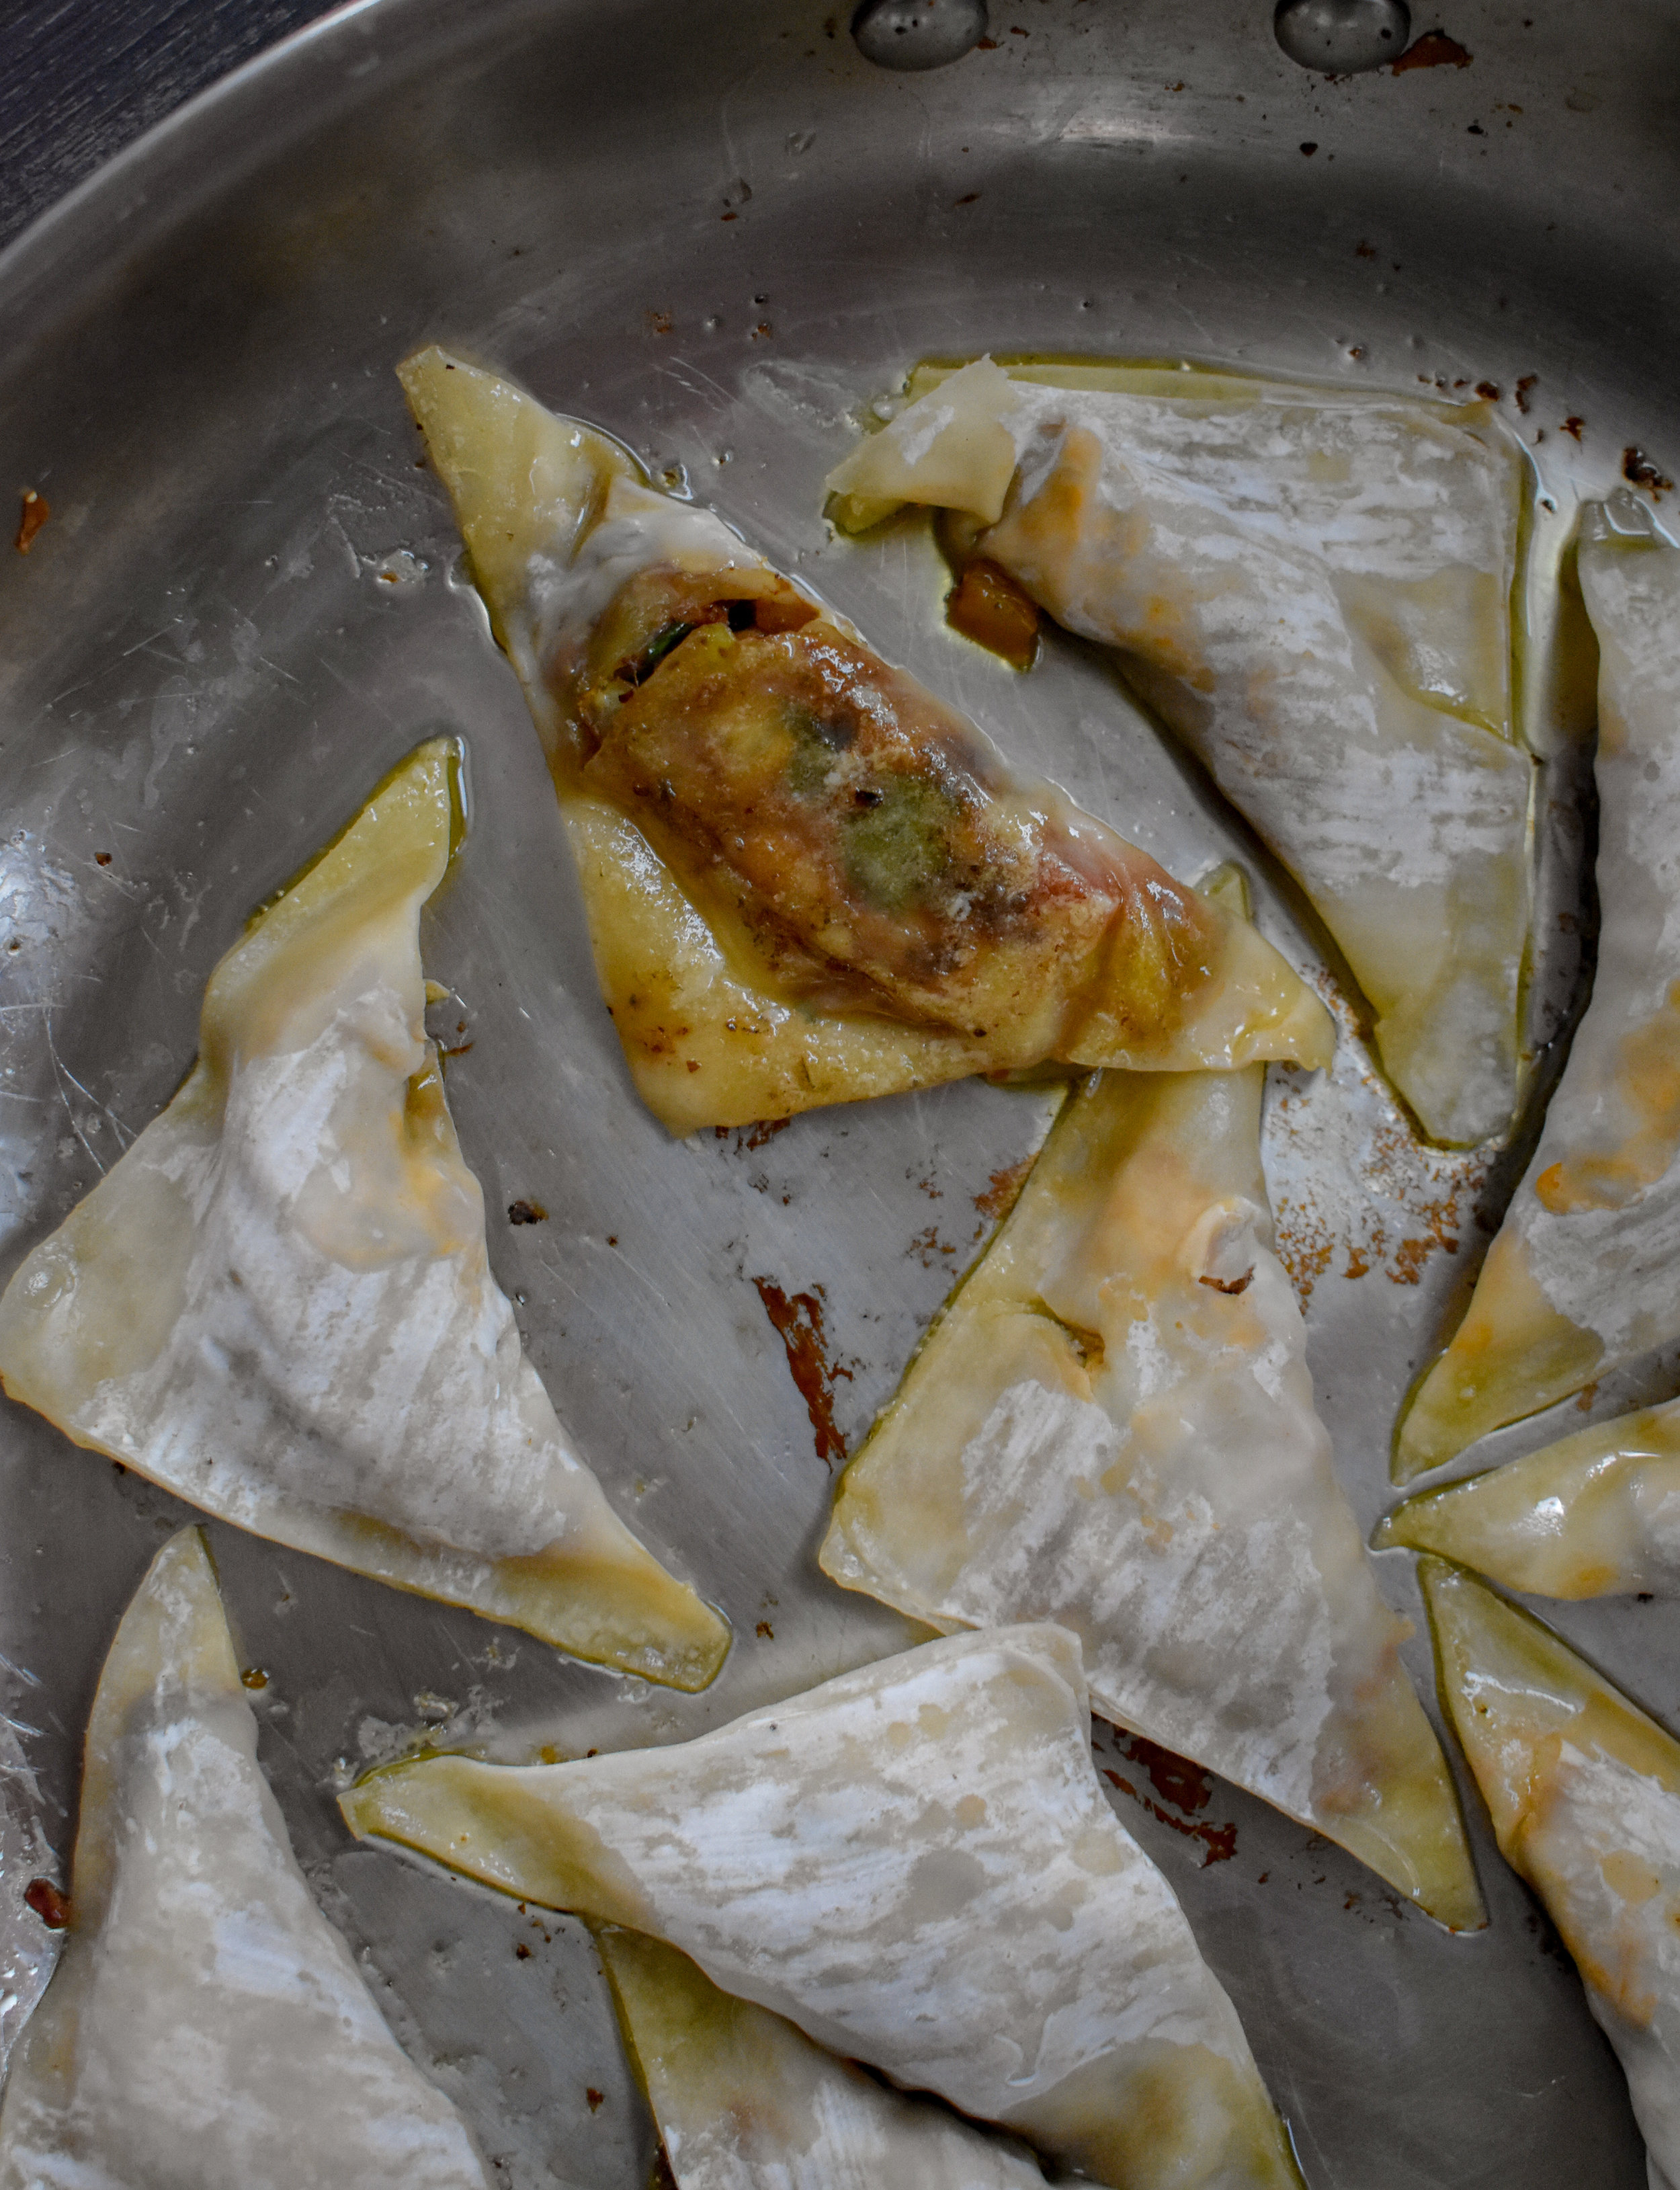 7. To finish the wontons, add to a large frying pan with 2 tsp of sesame oil + 1 tsp of neutral oil. Fry for 4 minutes over medium heat then add 1/4 cup of water and steam for another 4 minutes until the water is evaporated. This process pan fries and steams it.